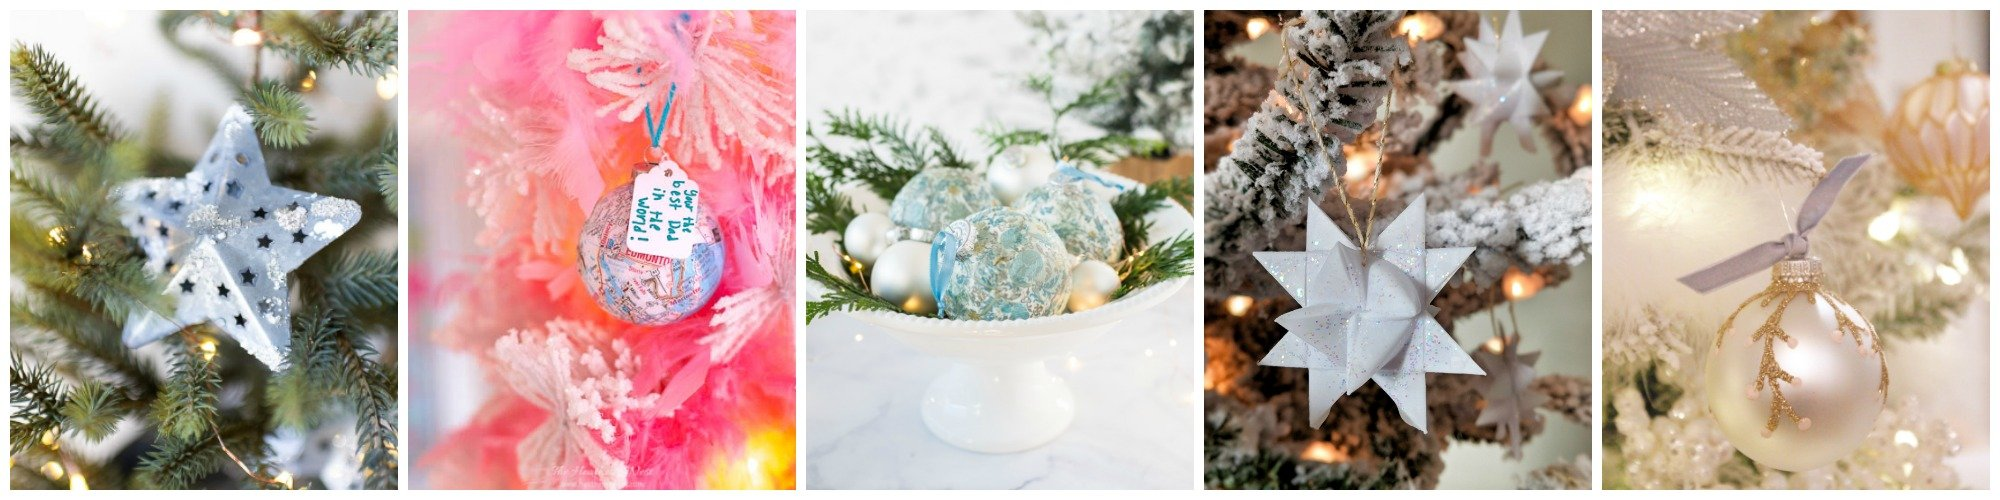 Christmas diy ornaments seasonal simplicity 4